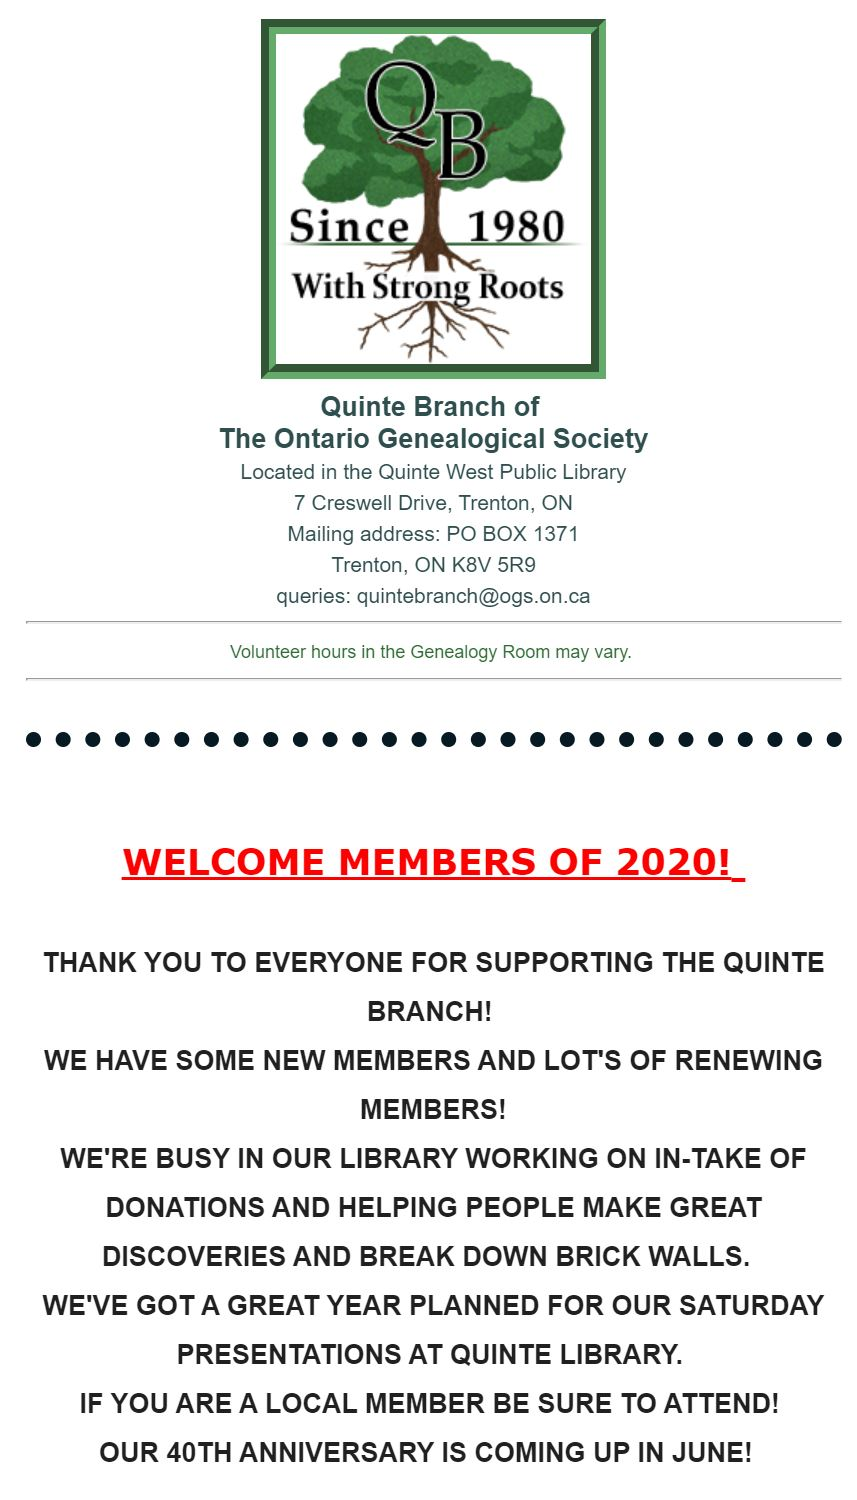 WELCOME 2020 - Quinte Branch of The Ontario Genealogical ...